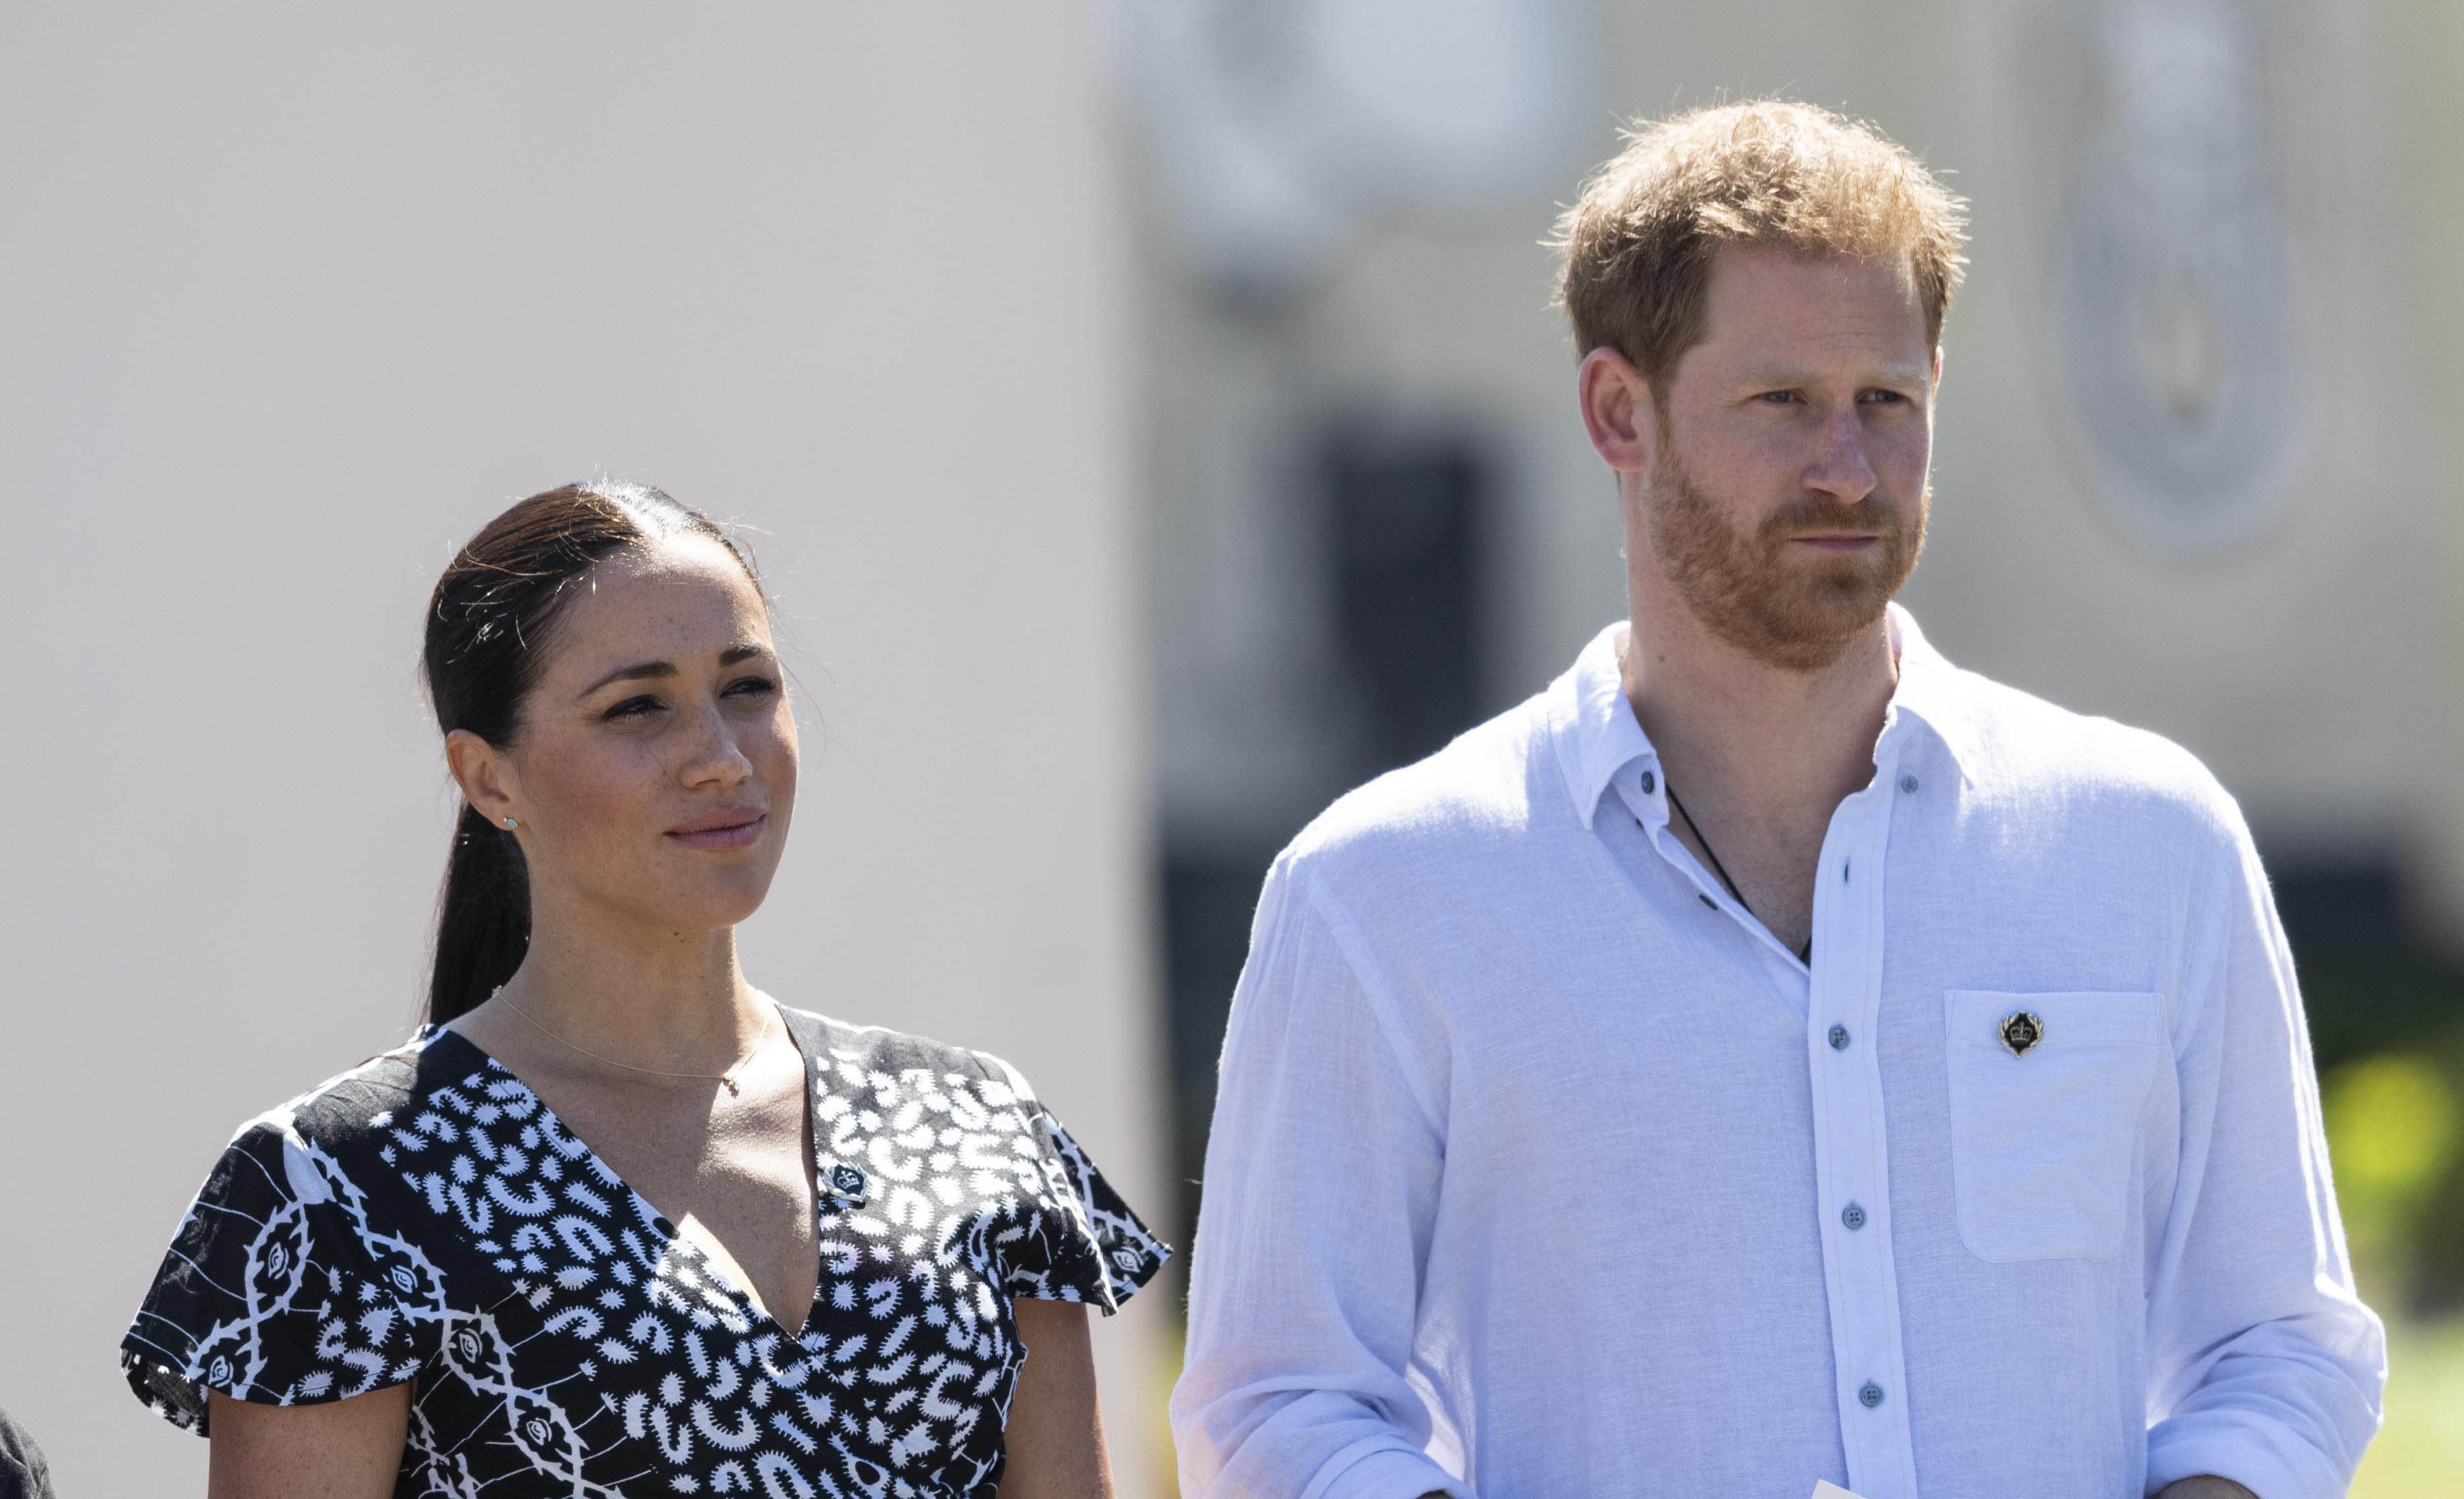 "January 20th 2020 - Buckingham Palace has announced that Prince Harry and Duchess Meghan will no longer use ""royal highness"" titles and will not receive public money for their royal duties. Additionally, as part of the terms of surrendering their royal responsibilities, Harry and Meghan will repay the $3.1 million cost of taxpayers' money that was spent renovating Frogmore Cottage - their home near Windsor Castle. - January 9th 2020 - Prince Harry The Duke of Sussex and Duchess Meghan of Sussex intend to step back their duties and responsibilities as senior members of the British Royal Family. - File Photo by: zz/KGC-178/STAR MAX/IPx 2019 9/23/19 Prince Harry The Duke of Sussex and Meghan The Duchess of Sussex visit Cape Town, South Africa."